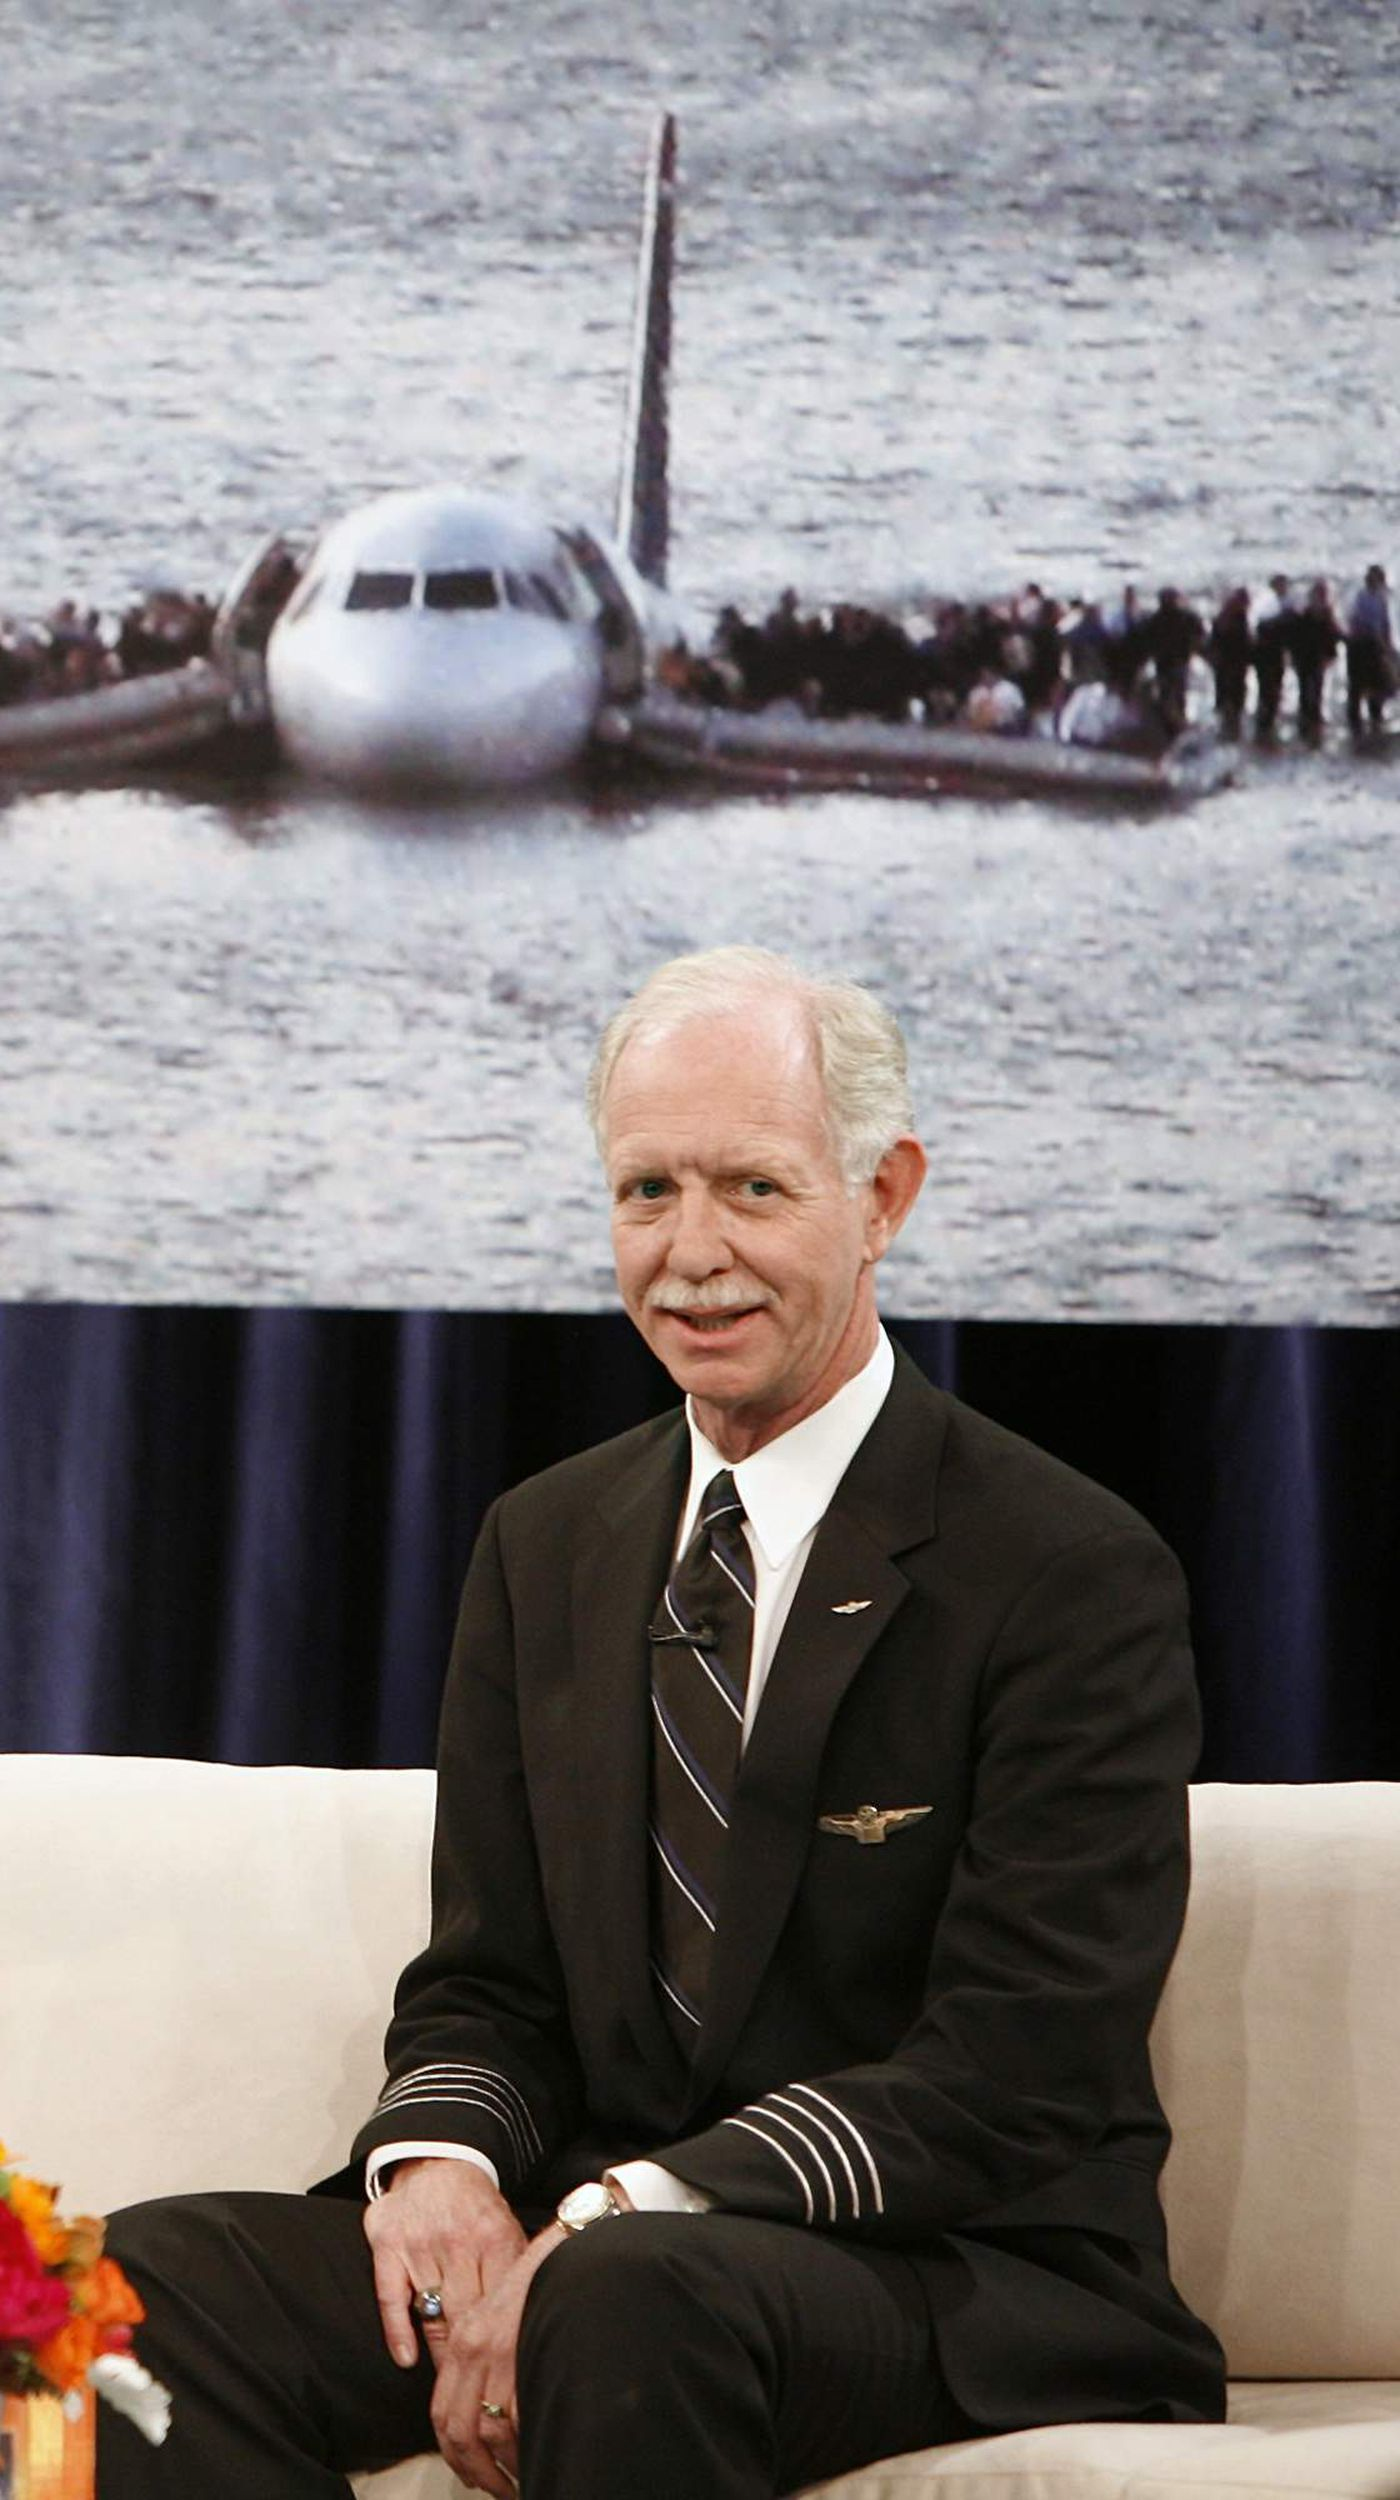 Sully Sullenberger We Saved 155 Lives In The Miracle On The Hudson Now Let S Vote For Leaders Who Ll Protect Us All